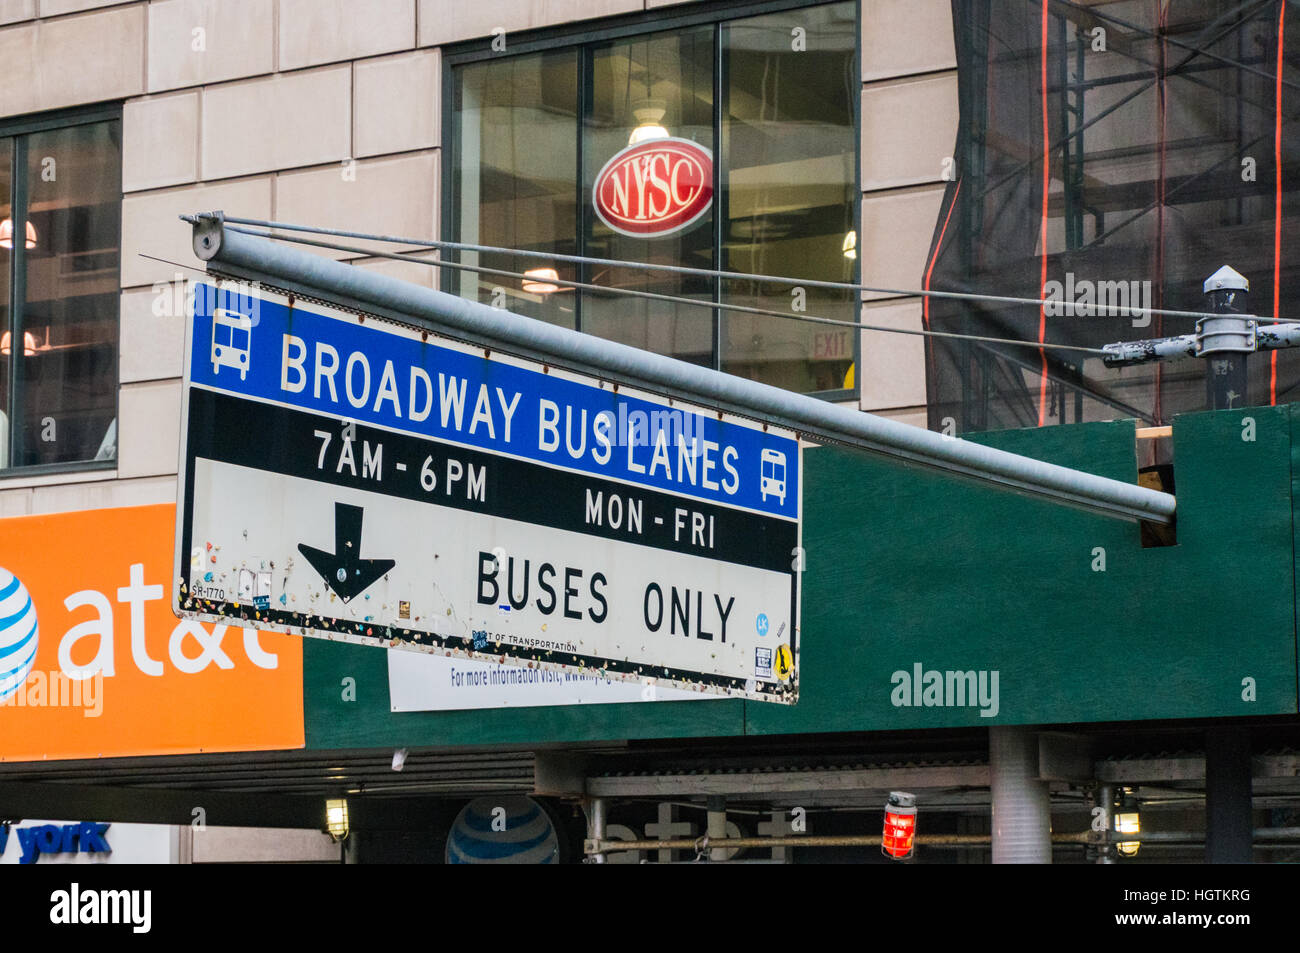 Chewing gum on the bottom of a Broadway Bus Lanes traffic sign in New York Stock Photo